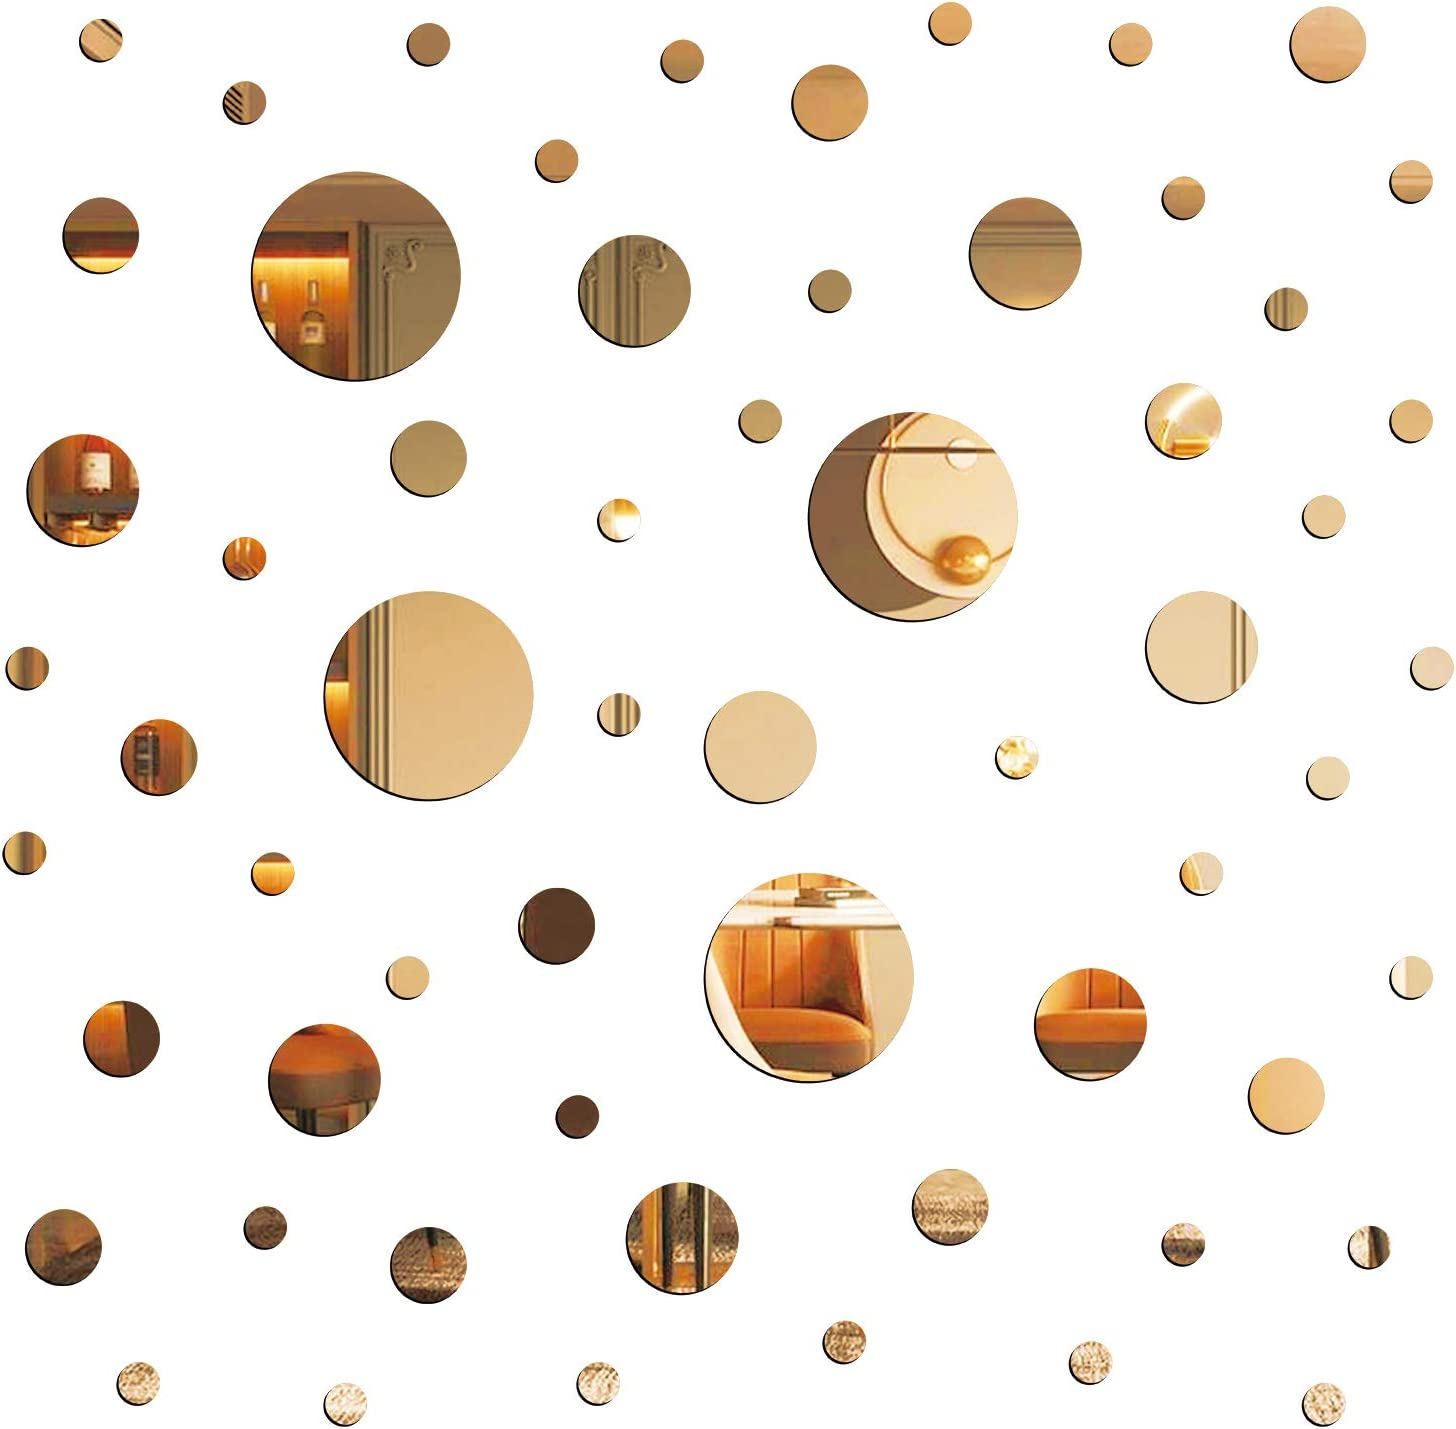 E EVENLIM 60 Pieces Gold Acrylic Round Circle Plastic Mirror DIY Wall Stickers Tiles Self Adhesive Decor for Living Dining Room Bedroom Bathroom Office Hallway House Mirrors Wall Decals Decorations…